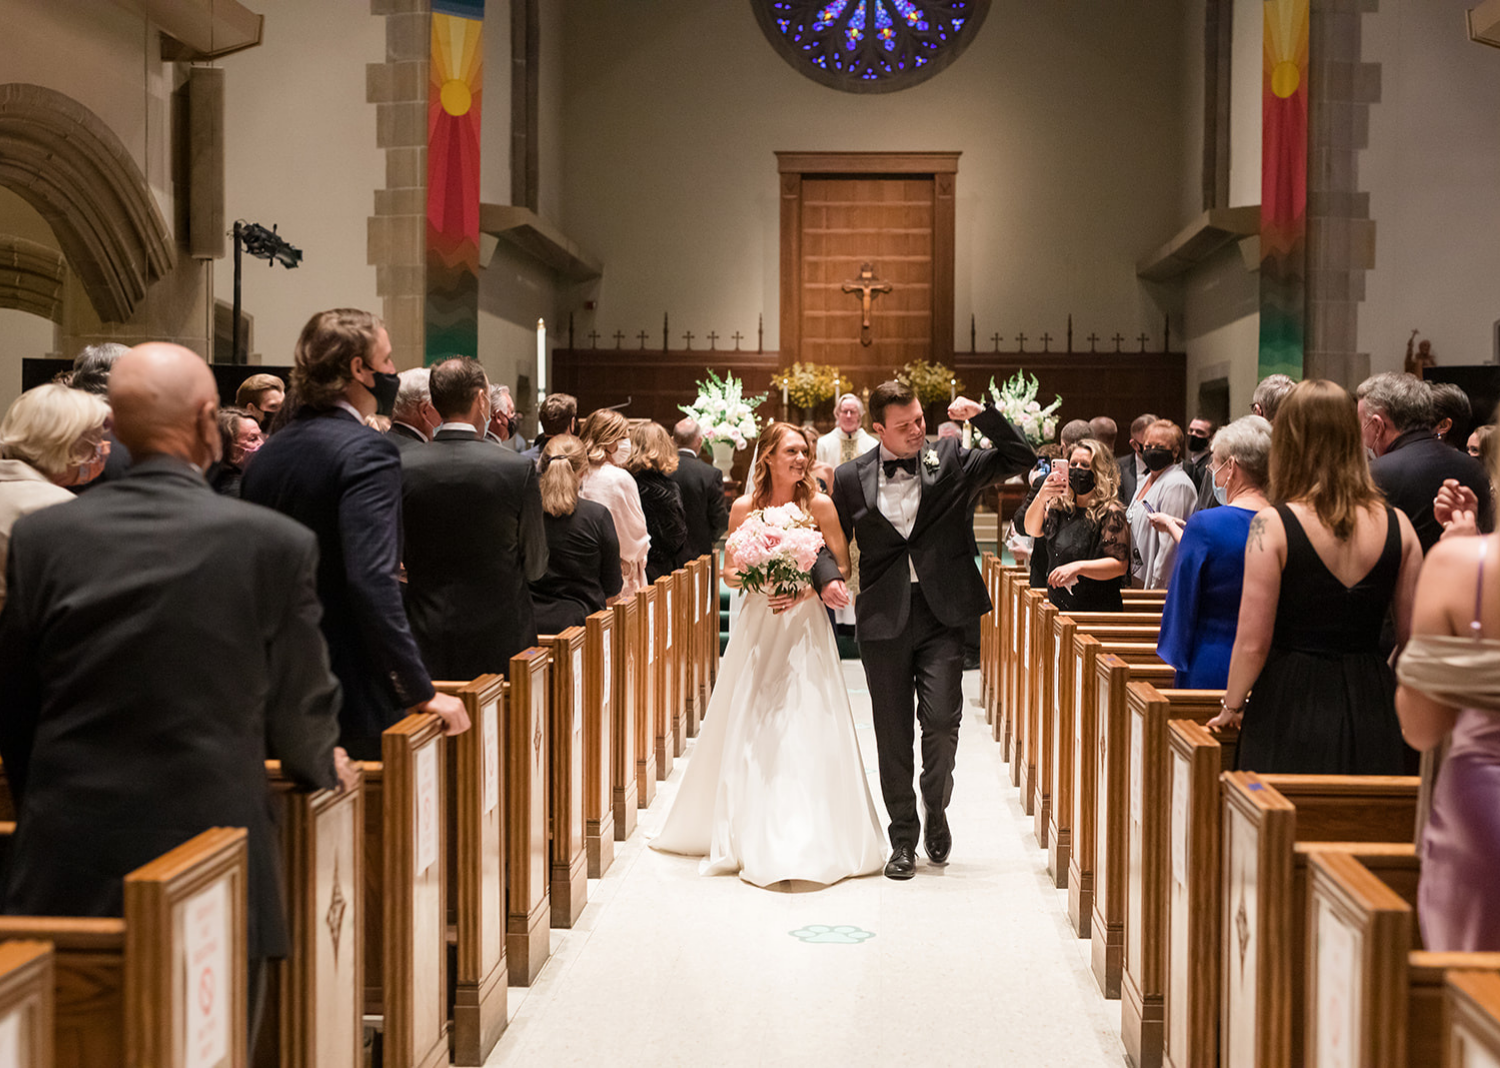 bride and groom walking down the aisle after their wedding ceremony